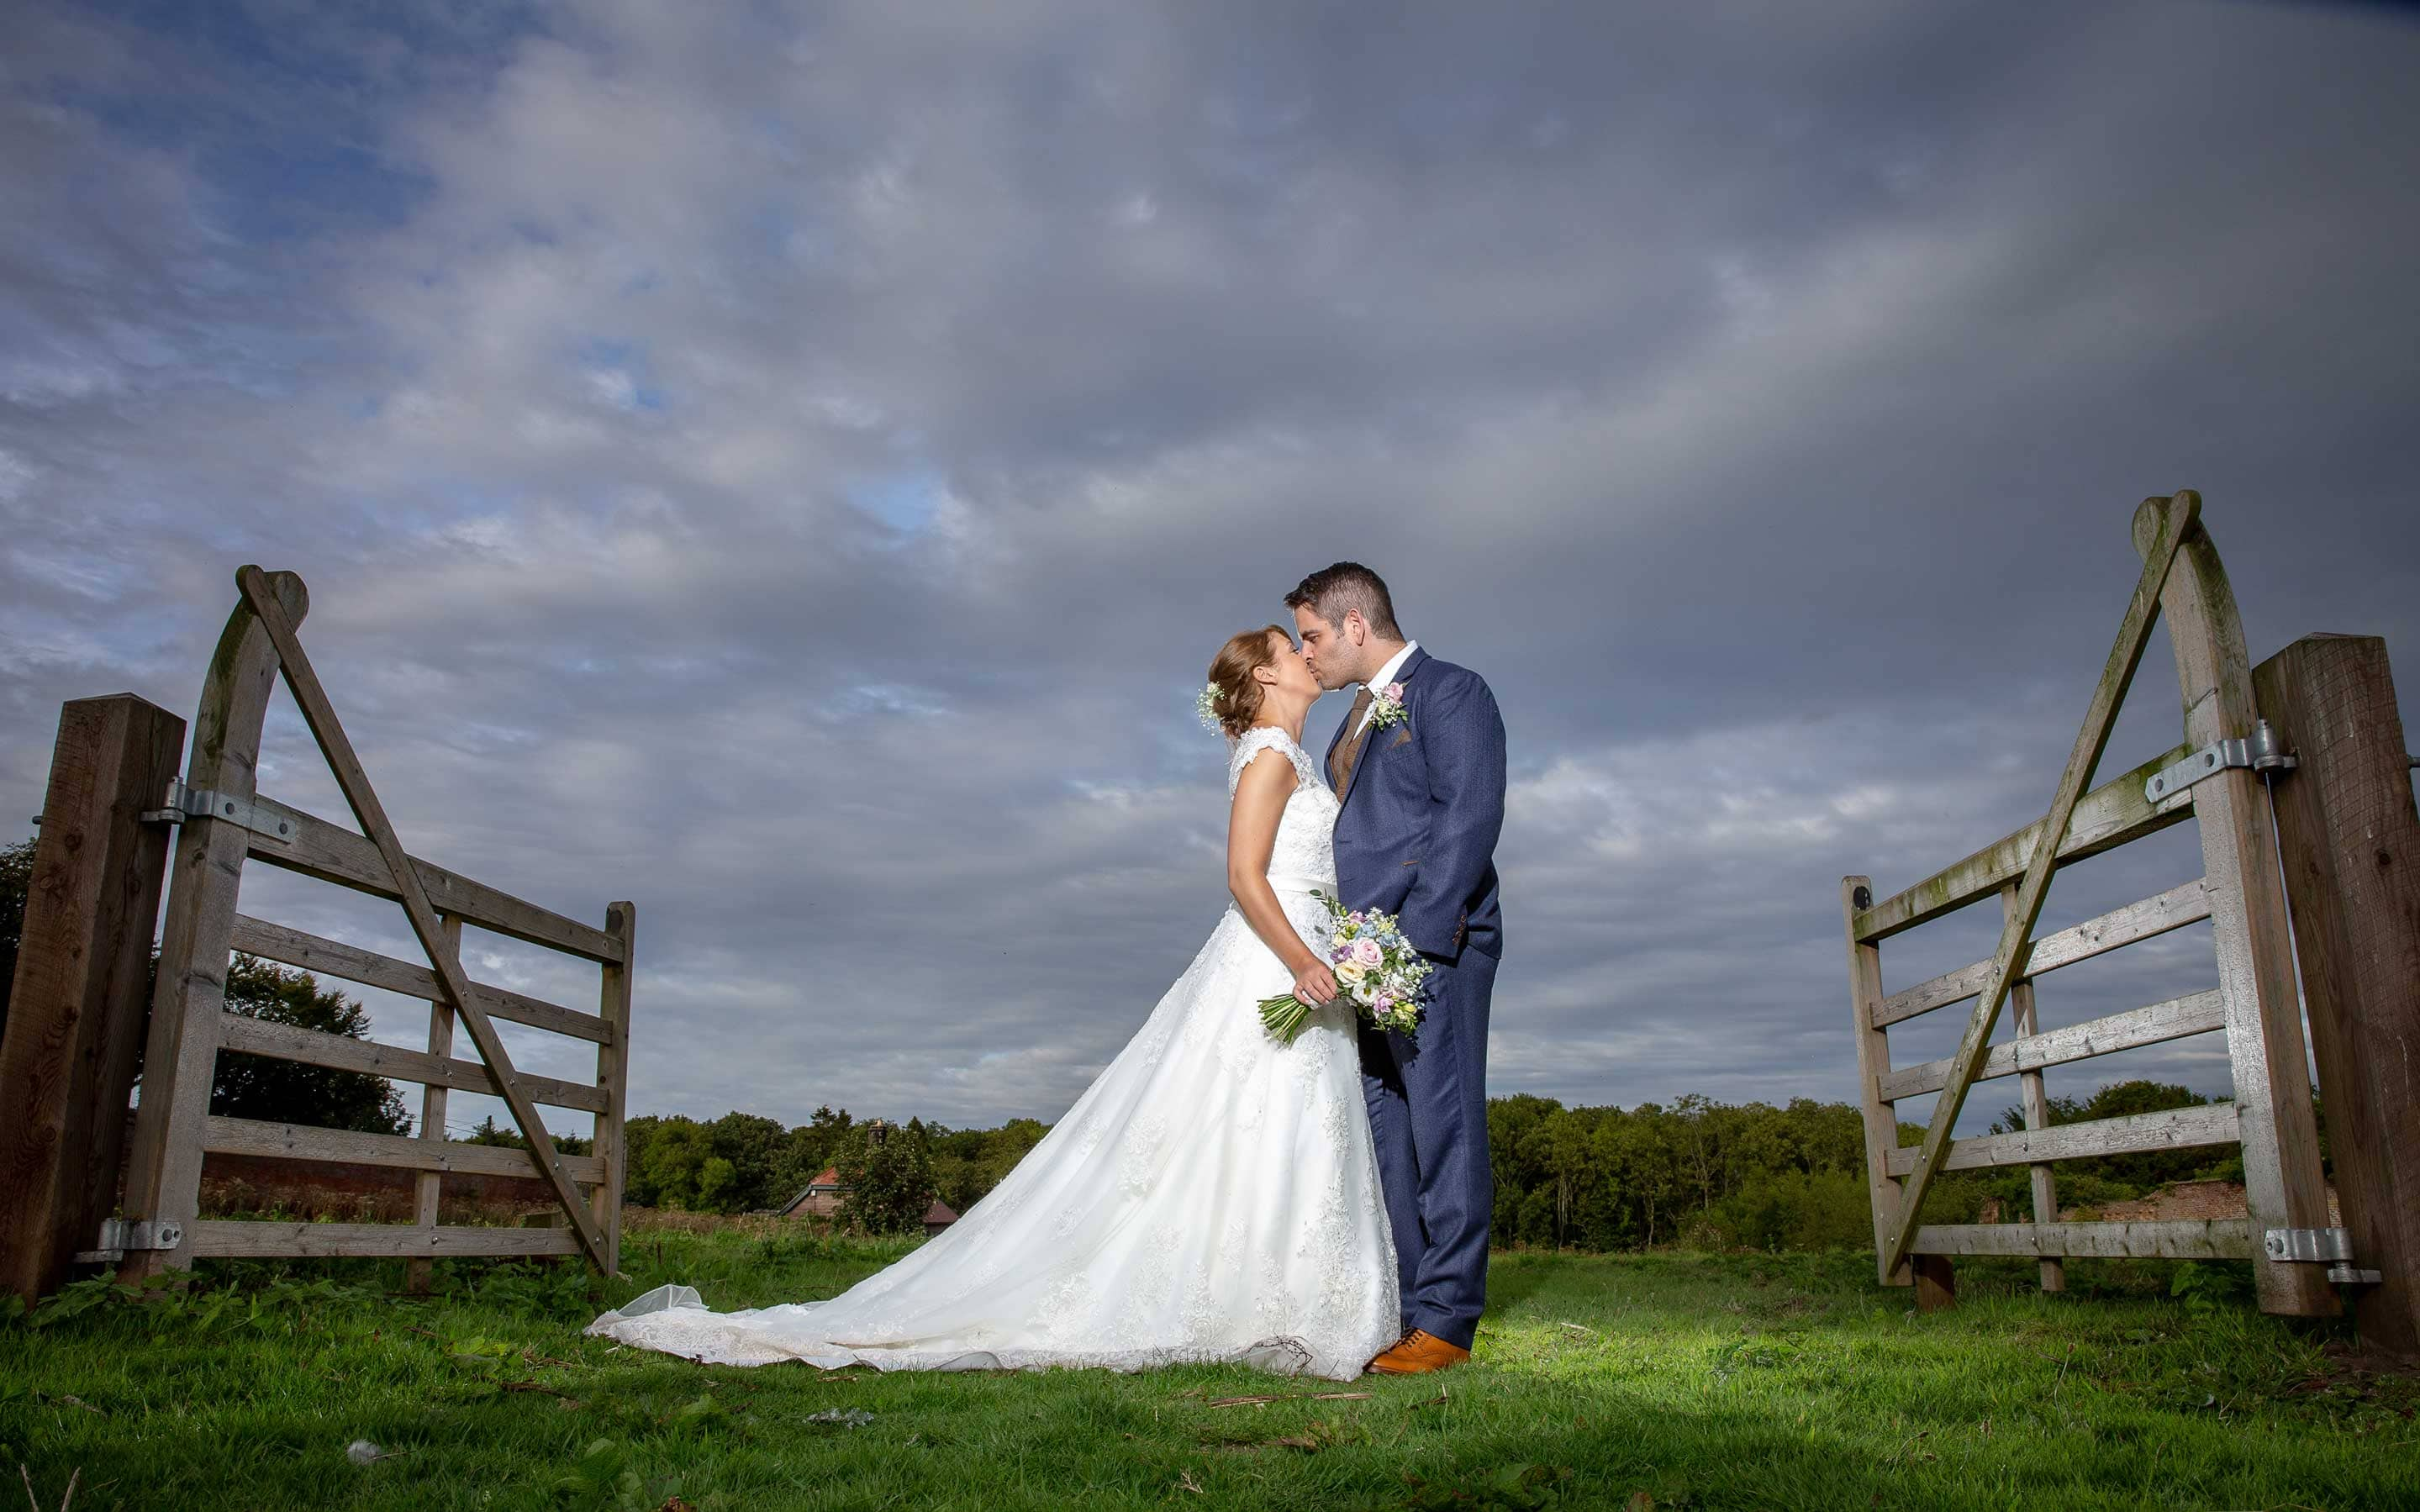 Wedding image of the bride and groom stood kissing near fence